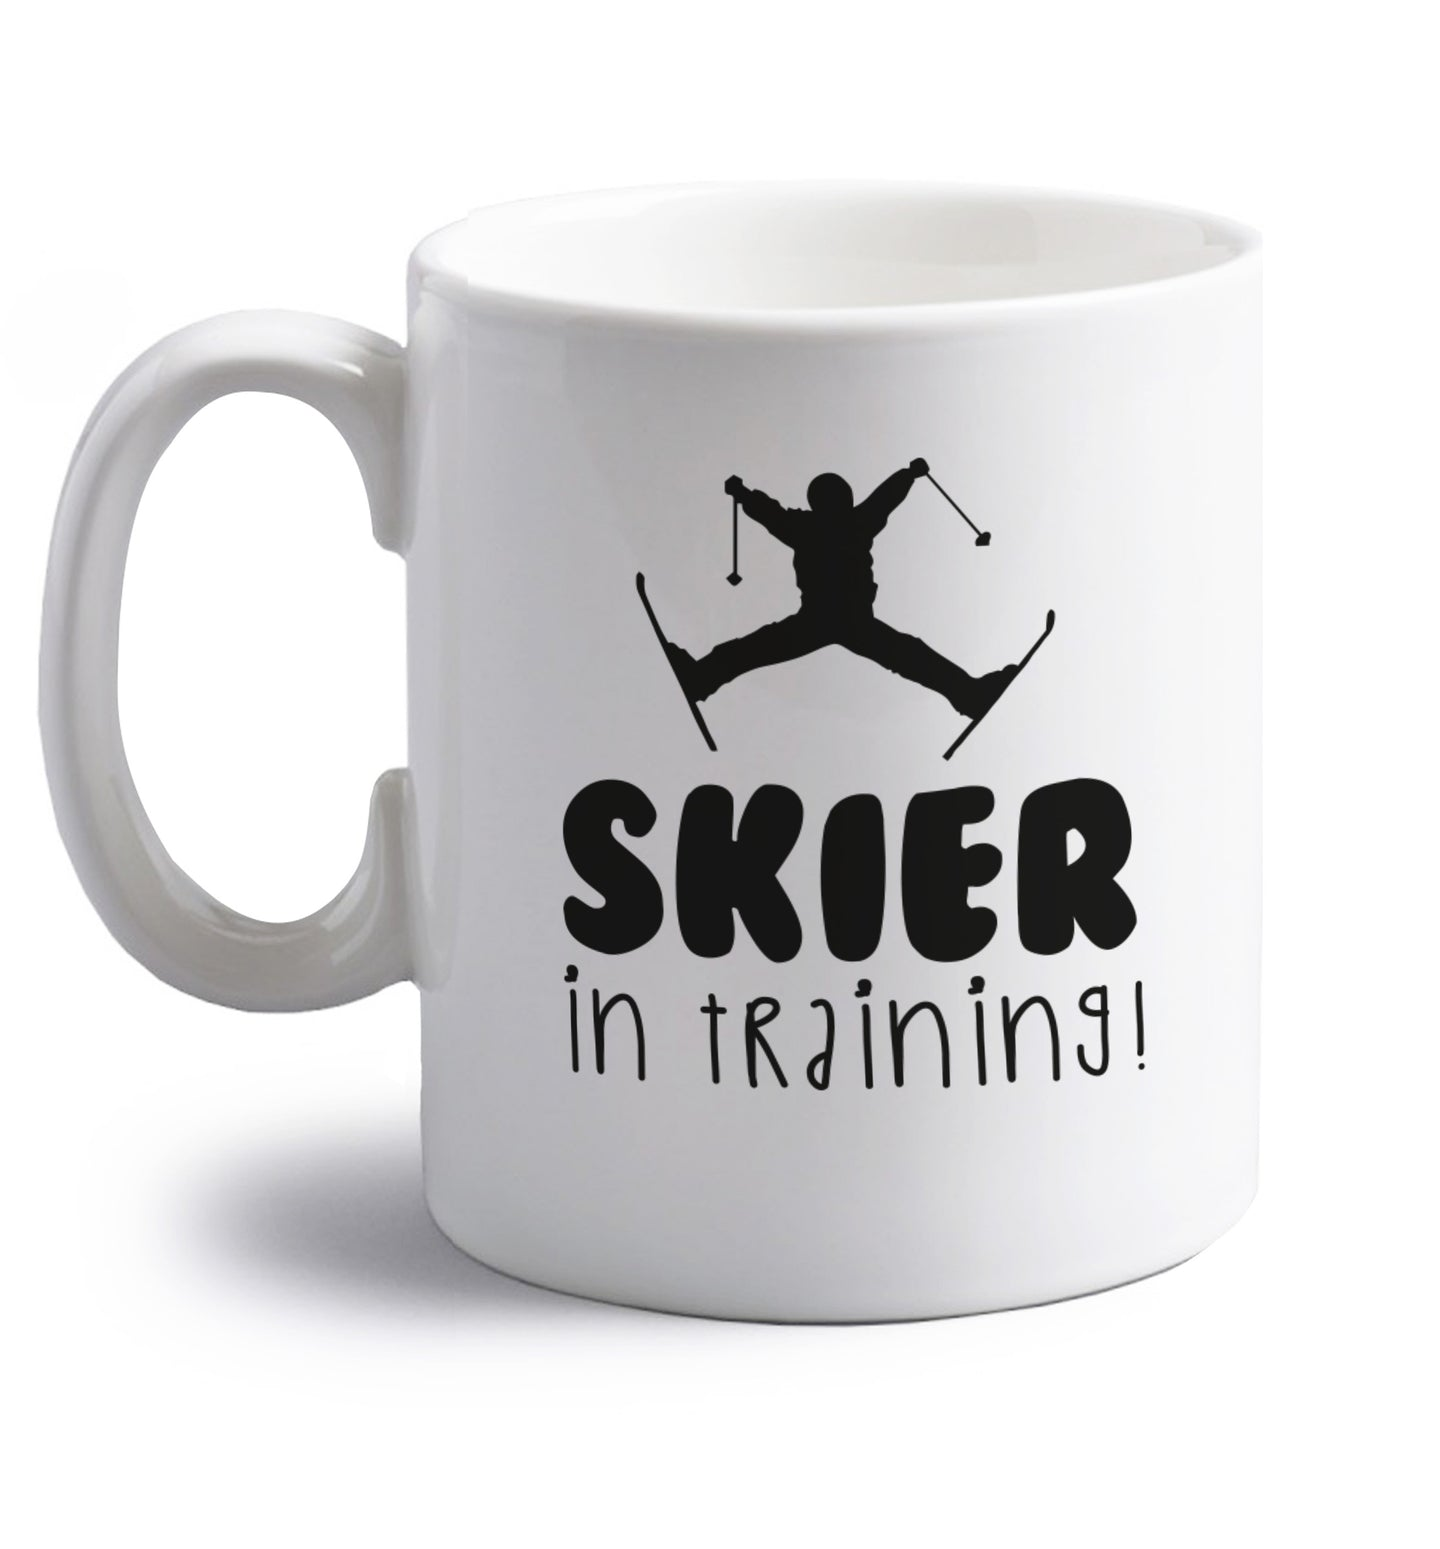 Skier in training right handed white ceramic mug